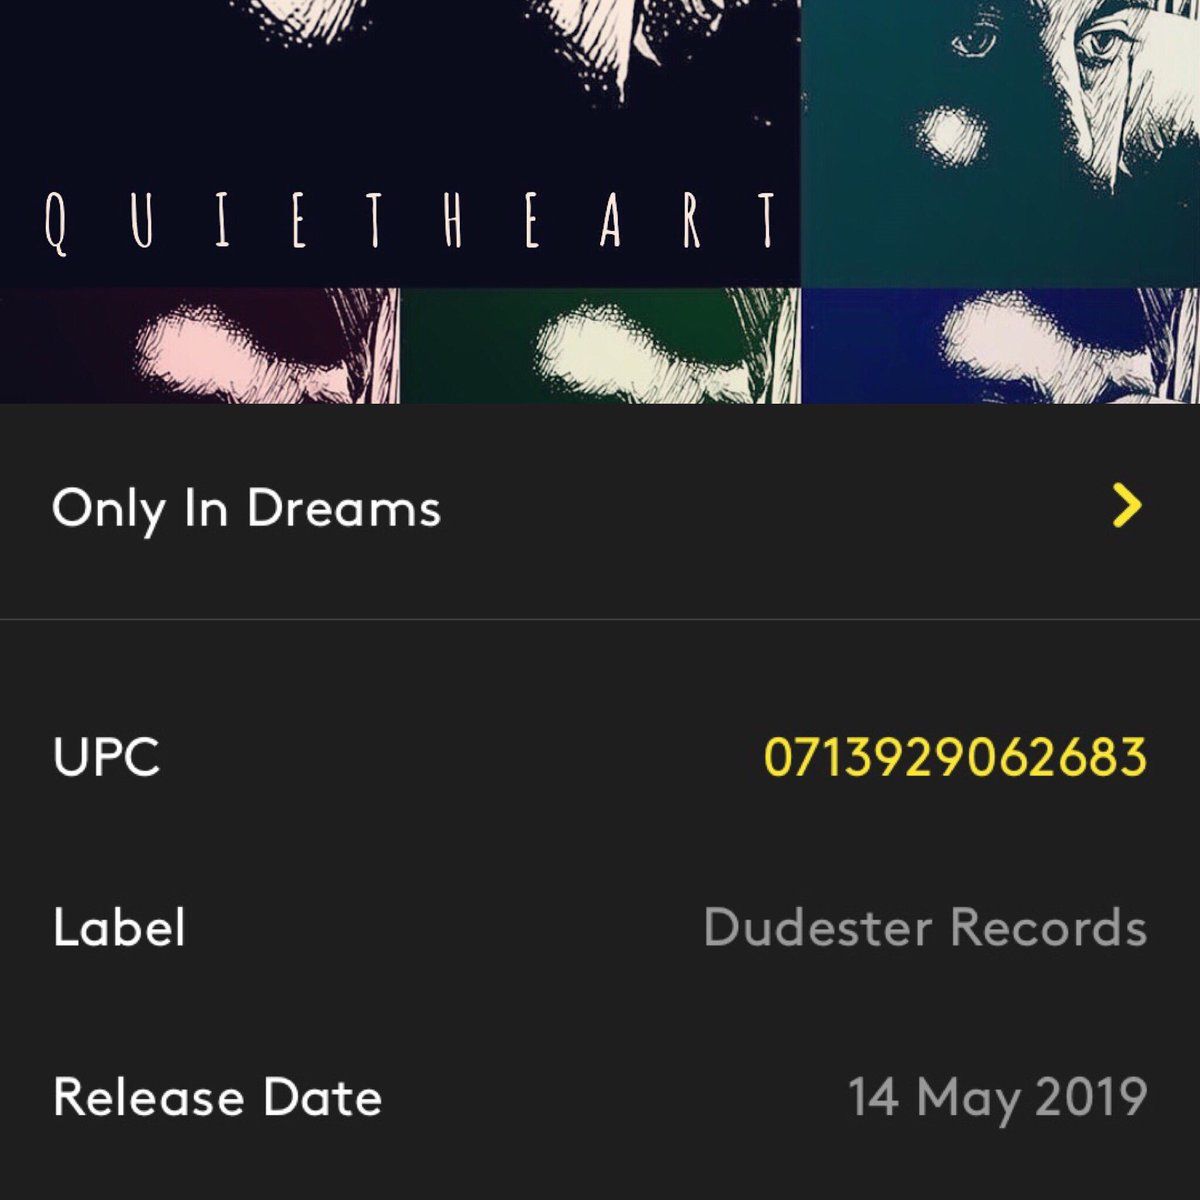 test Twitter Media - The new song 'Only In Dreams' for my music project 'Quietheart' is due for release in a couple of weeks. Watch this space! #music #indie #alternative #amuse #independentmusician #independentartist https://t.co/WXtq3GZ89H